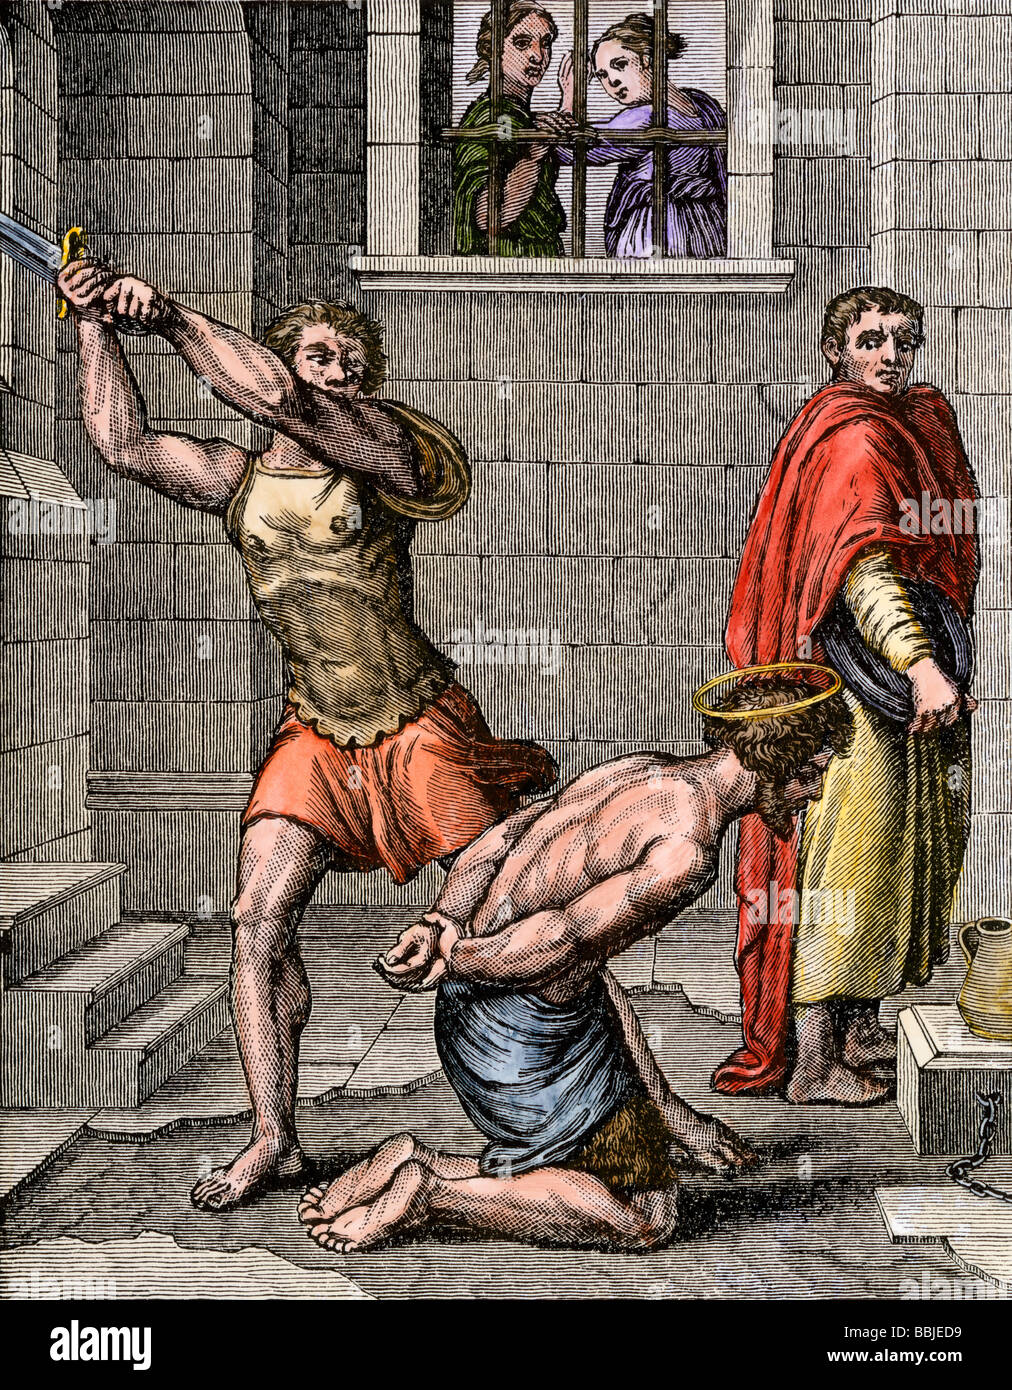 Beheading of John the Baptist by order of King Herod. Hand-colored woodcut - Stock Image